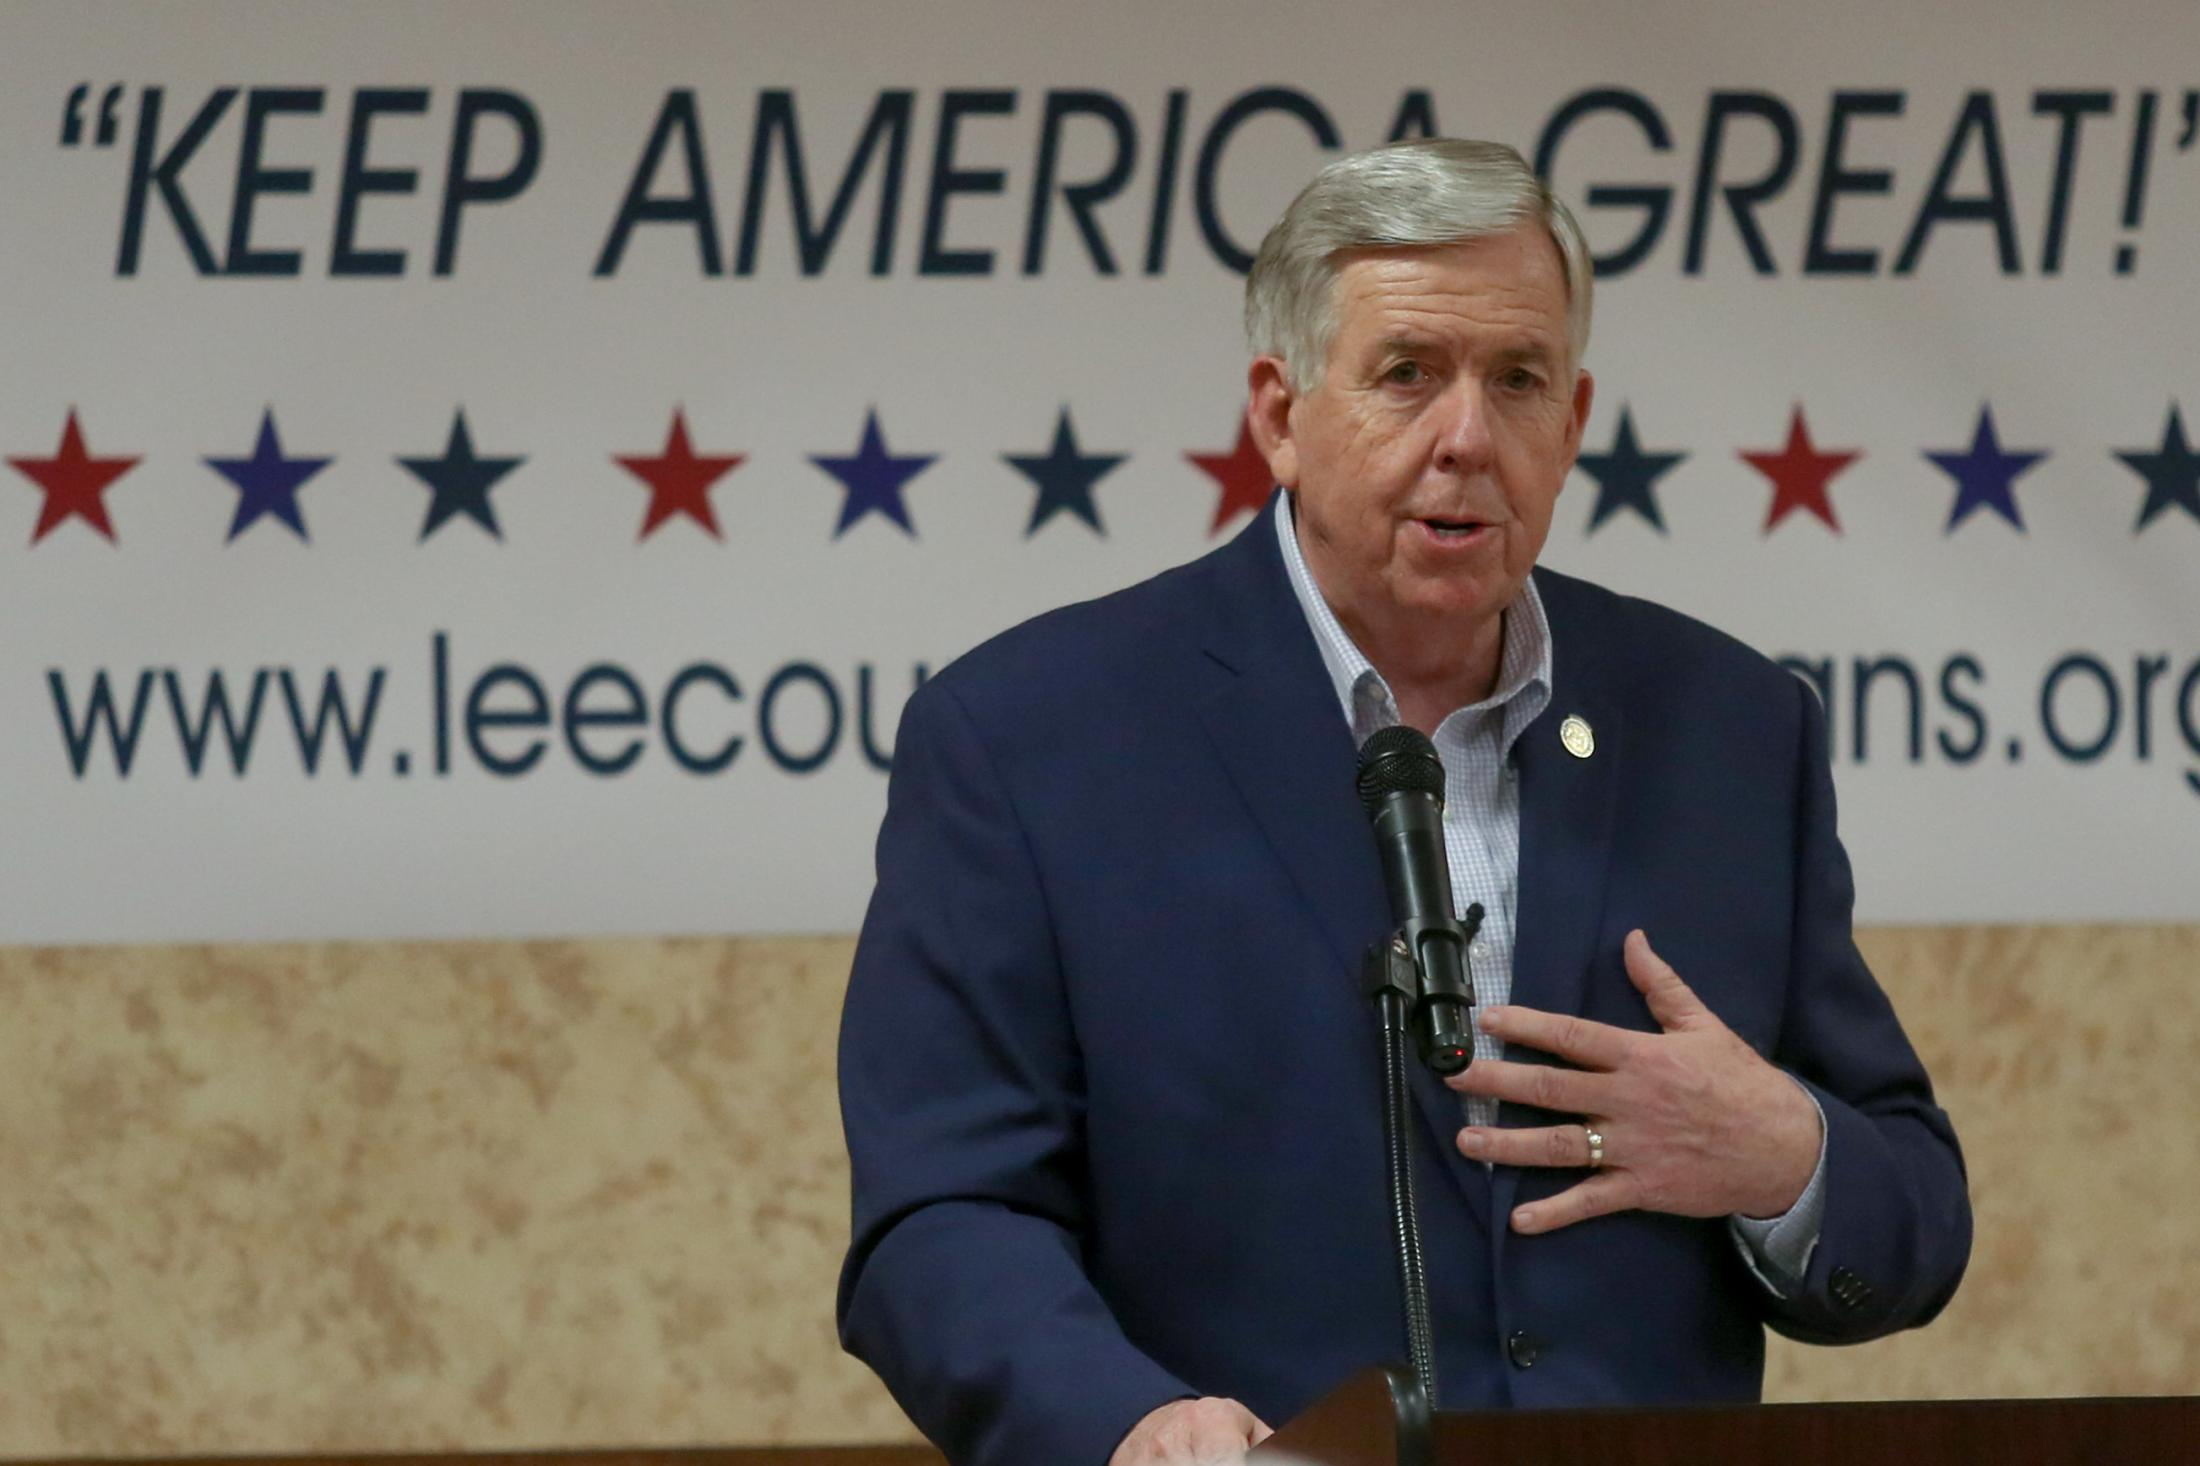 """Missouri Governor Mike Parson speaks to voters gathered at the Lee County Republican caucus on Monday, February 3, 2020, at a Quality Inn and Suites in Fort Madison, Iowa. Governor Parson quoted President Trump in his speech saying, """"America will never, ever, be a socialist country."""""""